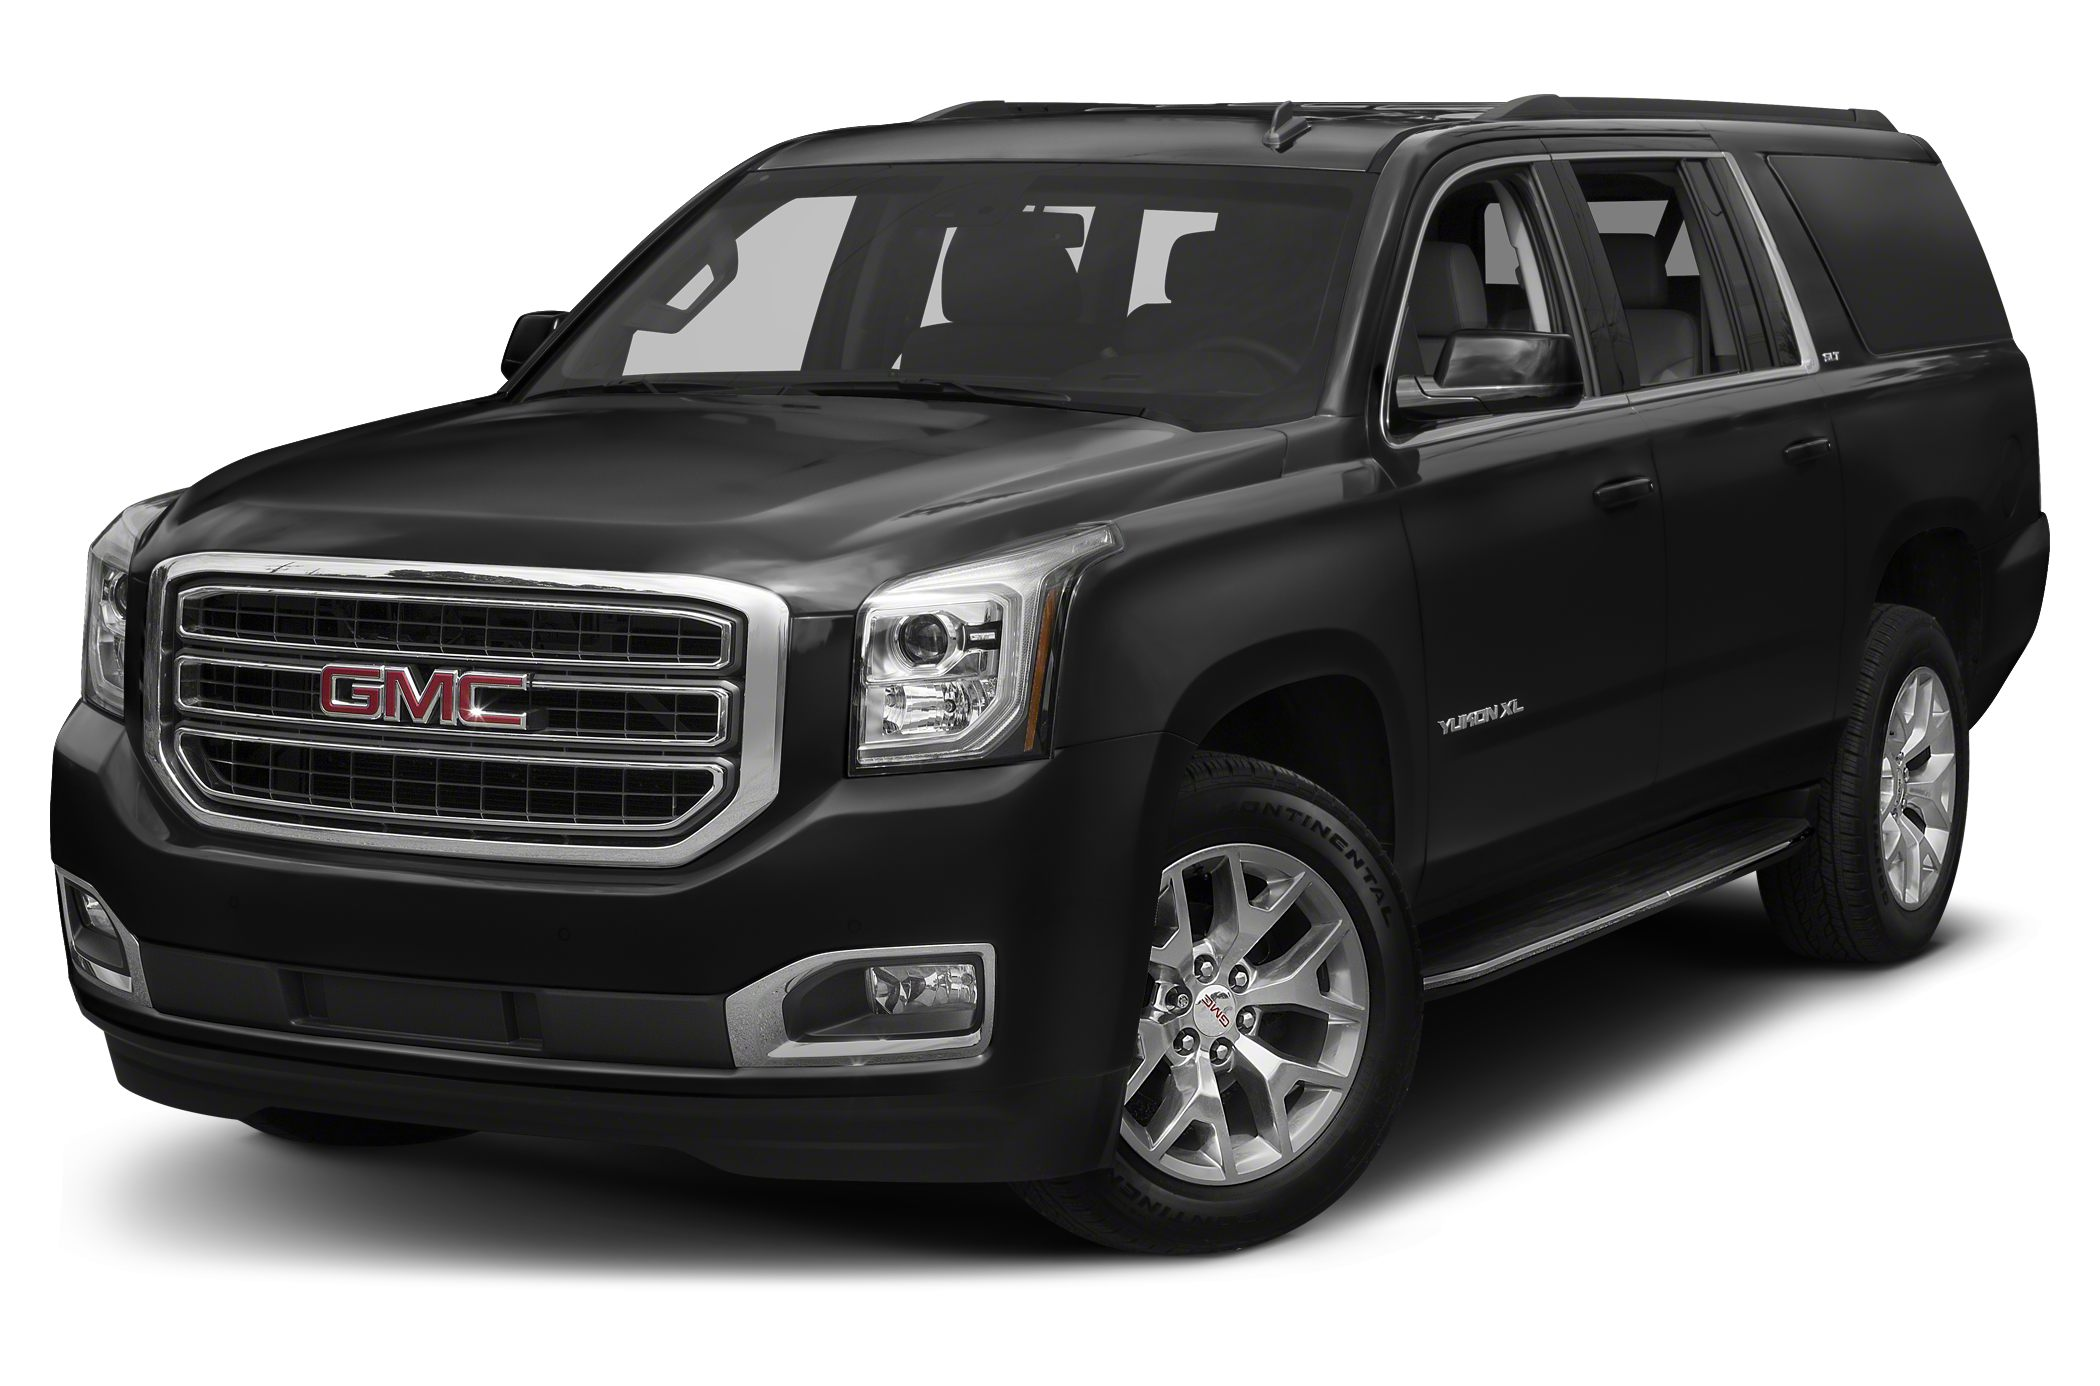 2015 GMC Yukon XL 1500 SLT SUV for sale in Henderson for $65,906 with 12 miles.